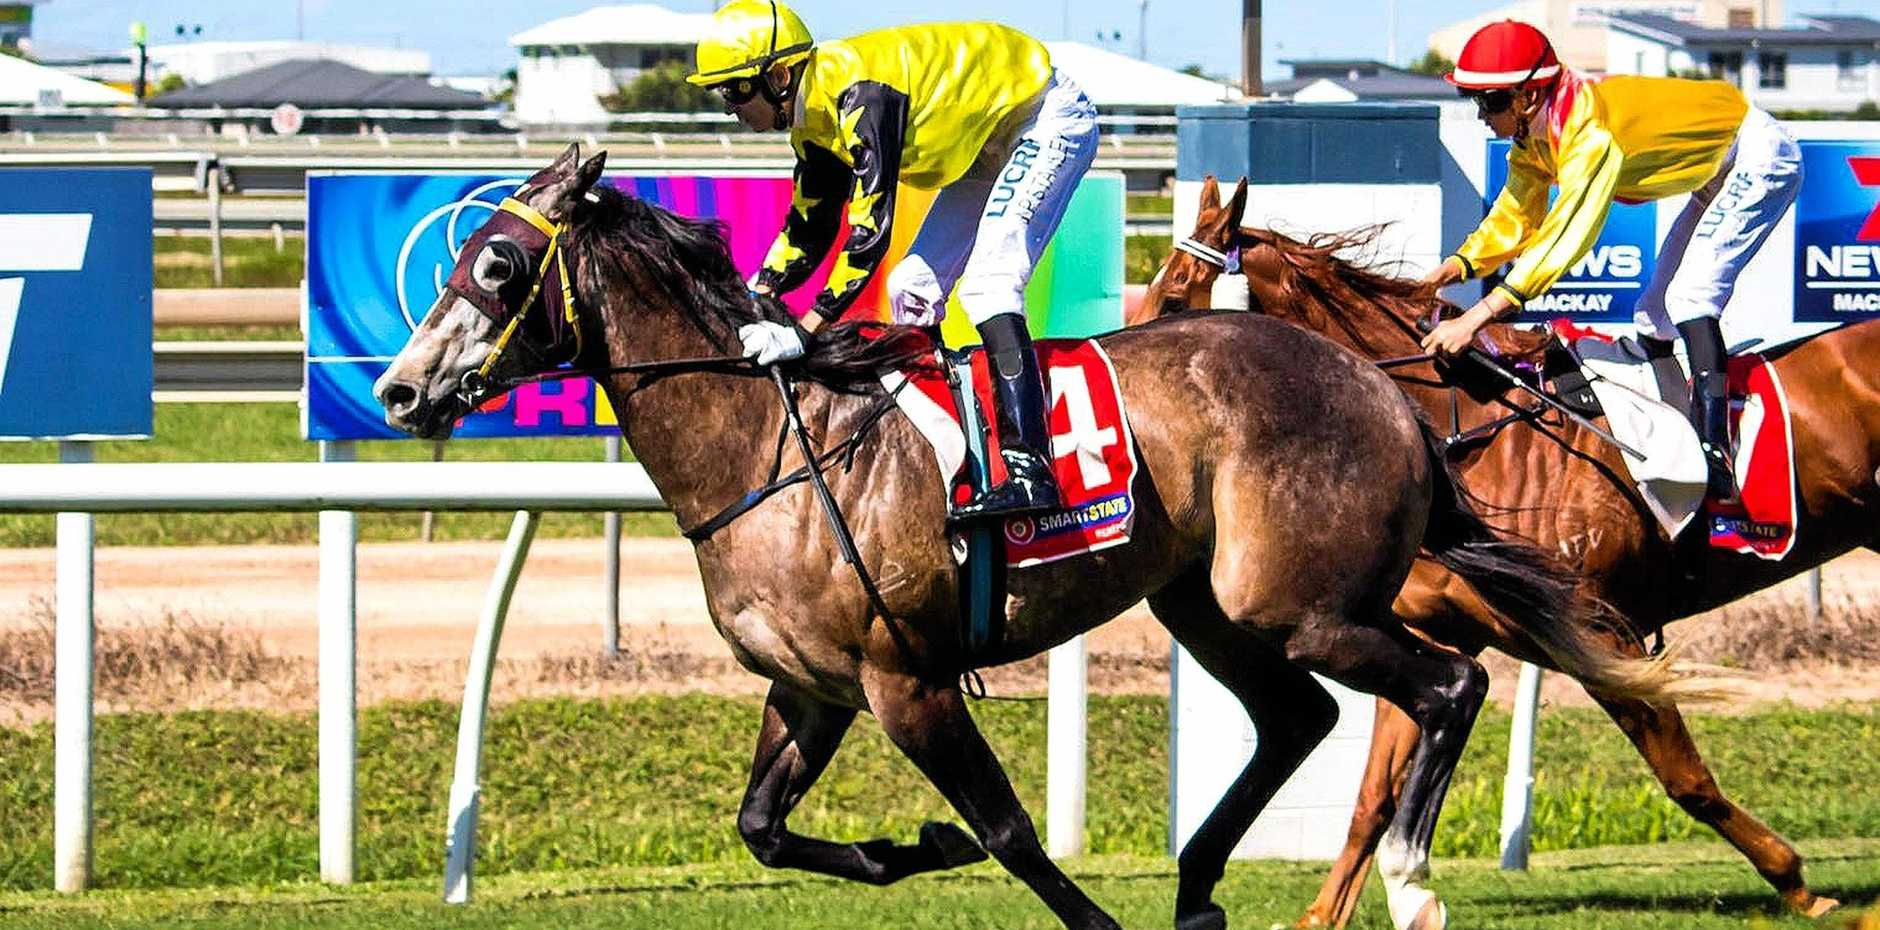 Mackay-based trainer Trinity Bannon's galloper Goliath, who almost died due to complications from being gelded, has a strong chance at a maiden win on Derby Day.